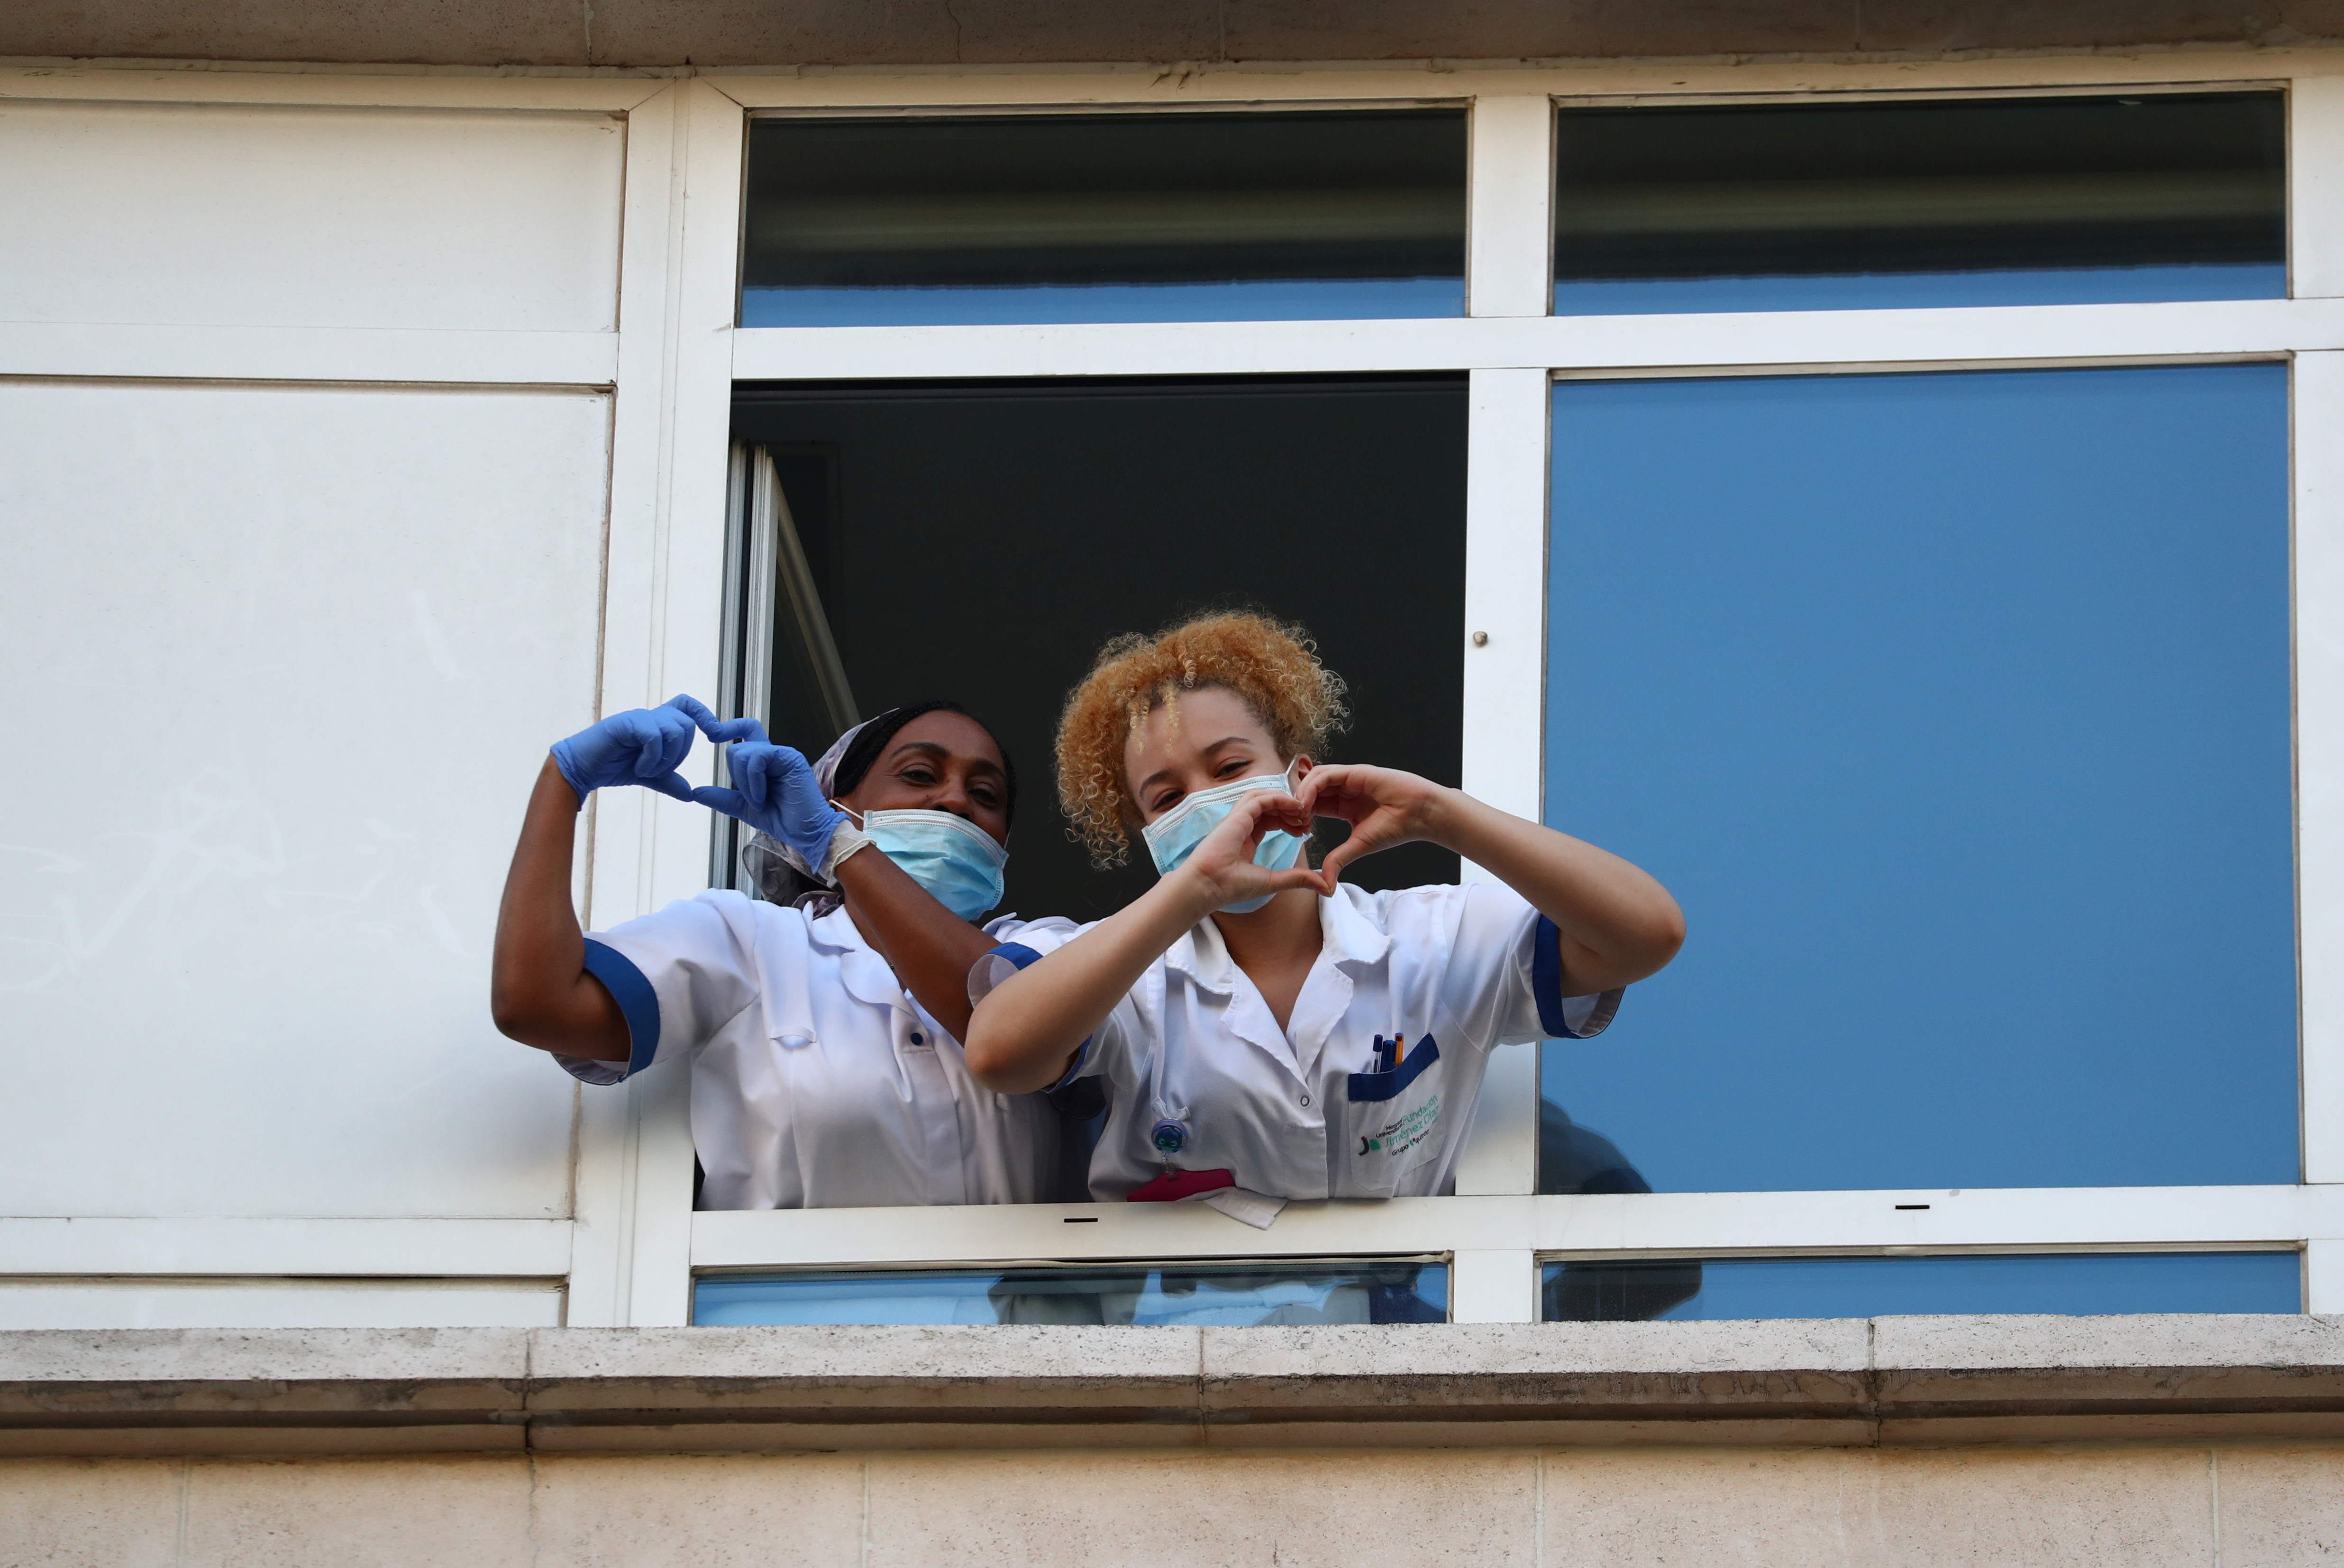 Medical staff from Fundacion Jimenez Diaz hospital make a heart gesture with their hands, while people applaud from their balconies in support for healthcare workers, as it is expected to be the last day of applauses, amid the coronavirus disease (COVID-19) outbreak, in Madrid, Spain, May 17, 2020